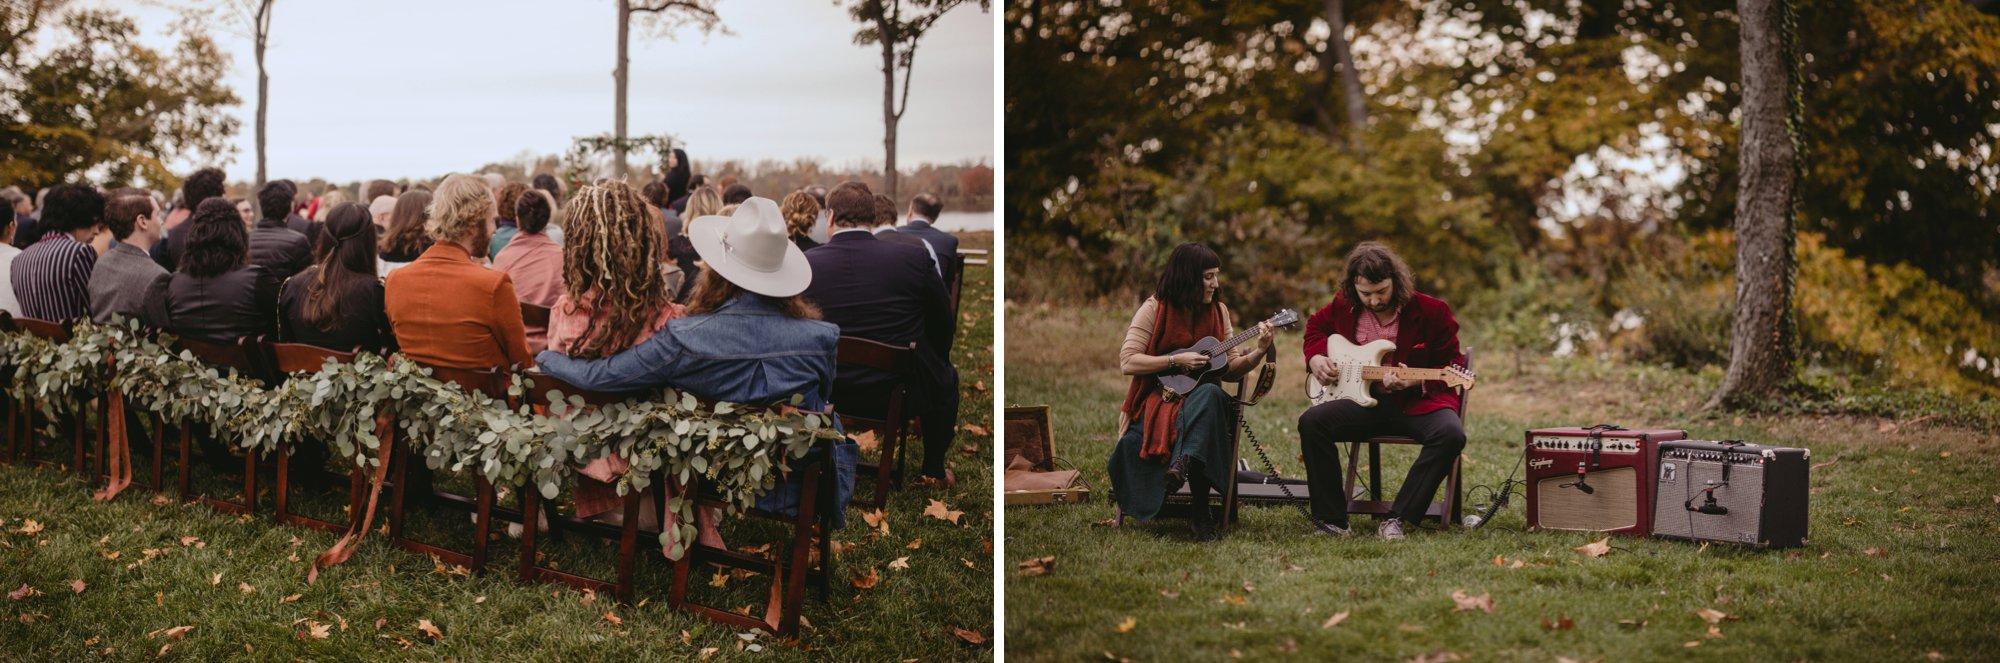 Autumn Richmond VA winery wedding at Upper Shirley Vineyards with lush garden florals and old Hollywood glamour ceremony